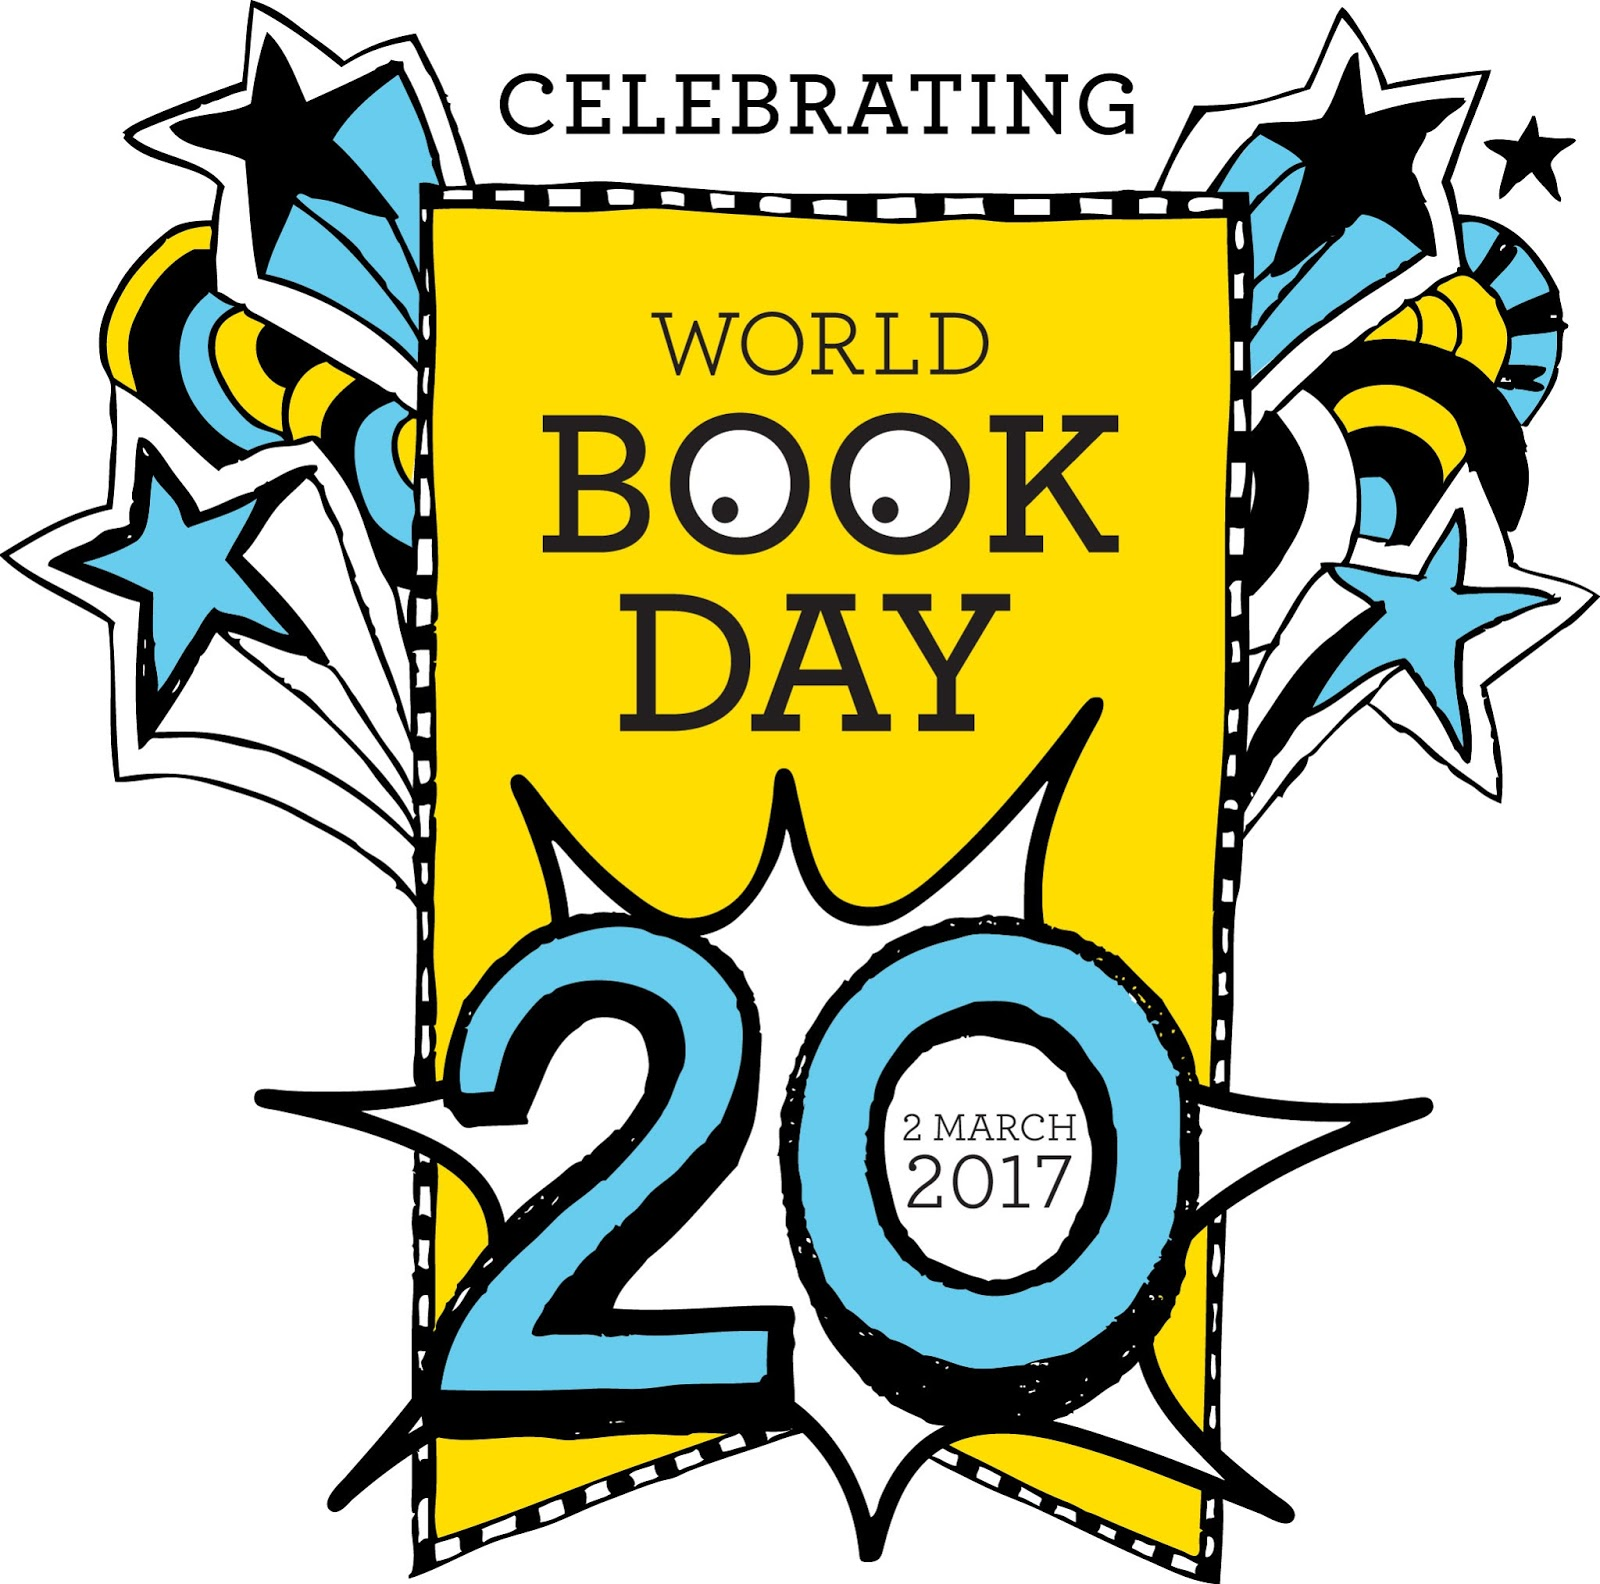 World Book Day 2017 logo - 2nd March